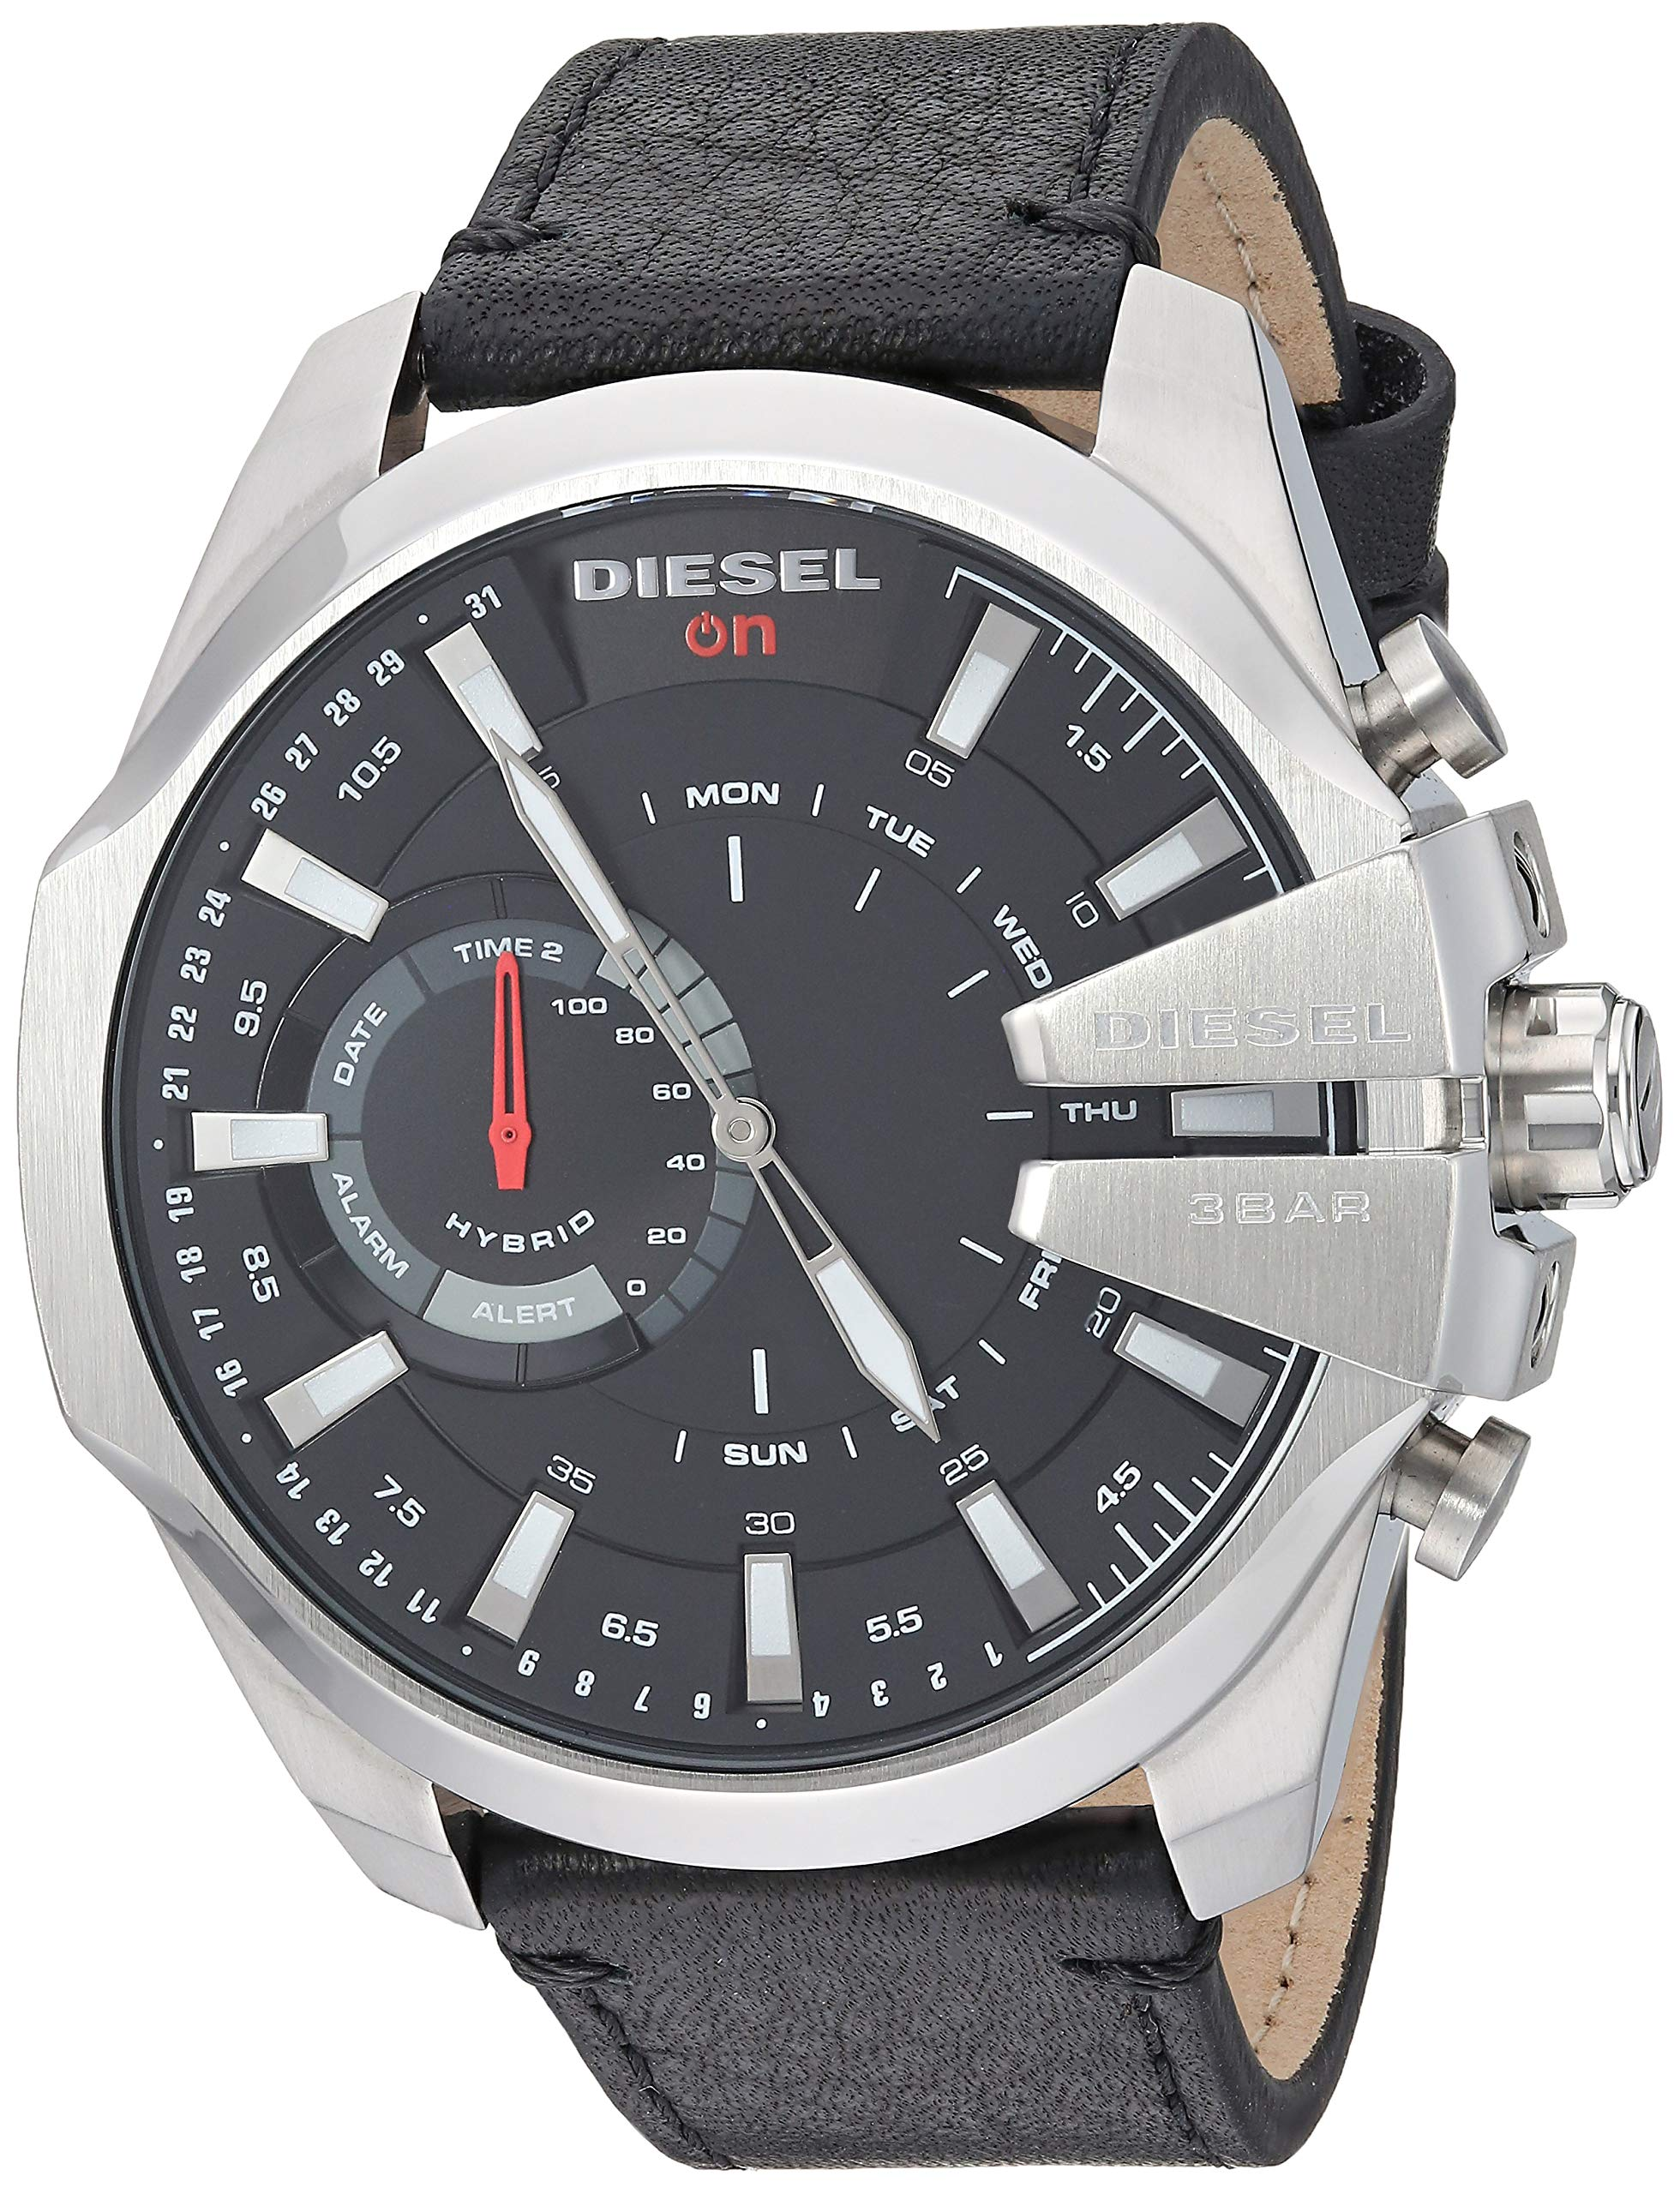 Diesel Smart Watch (Model: DZT1010) by Diesel (Image #1)